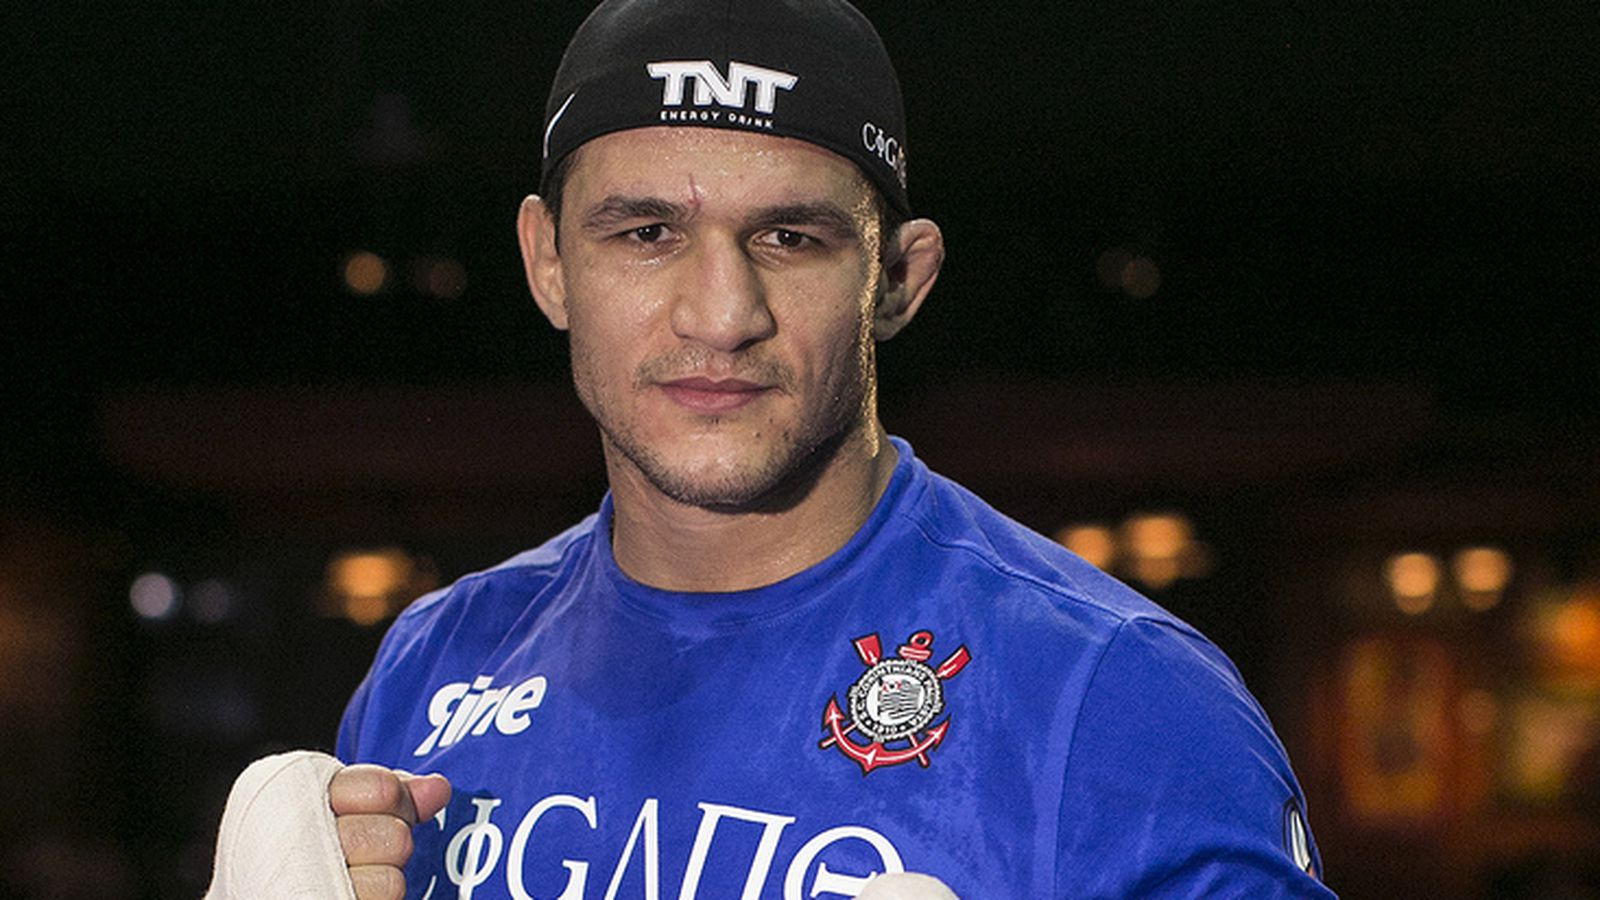 junior dos santos vs stipe miocic headlines ufc on fox 13